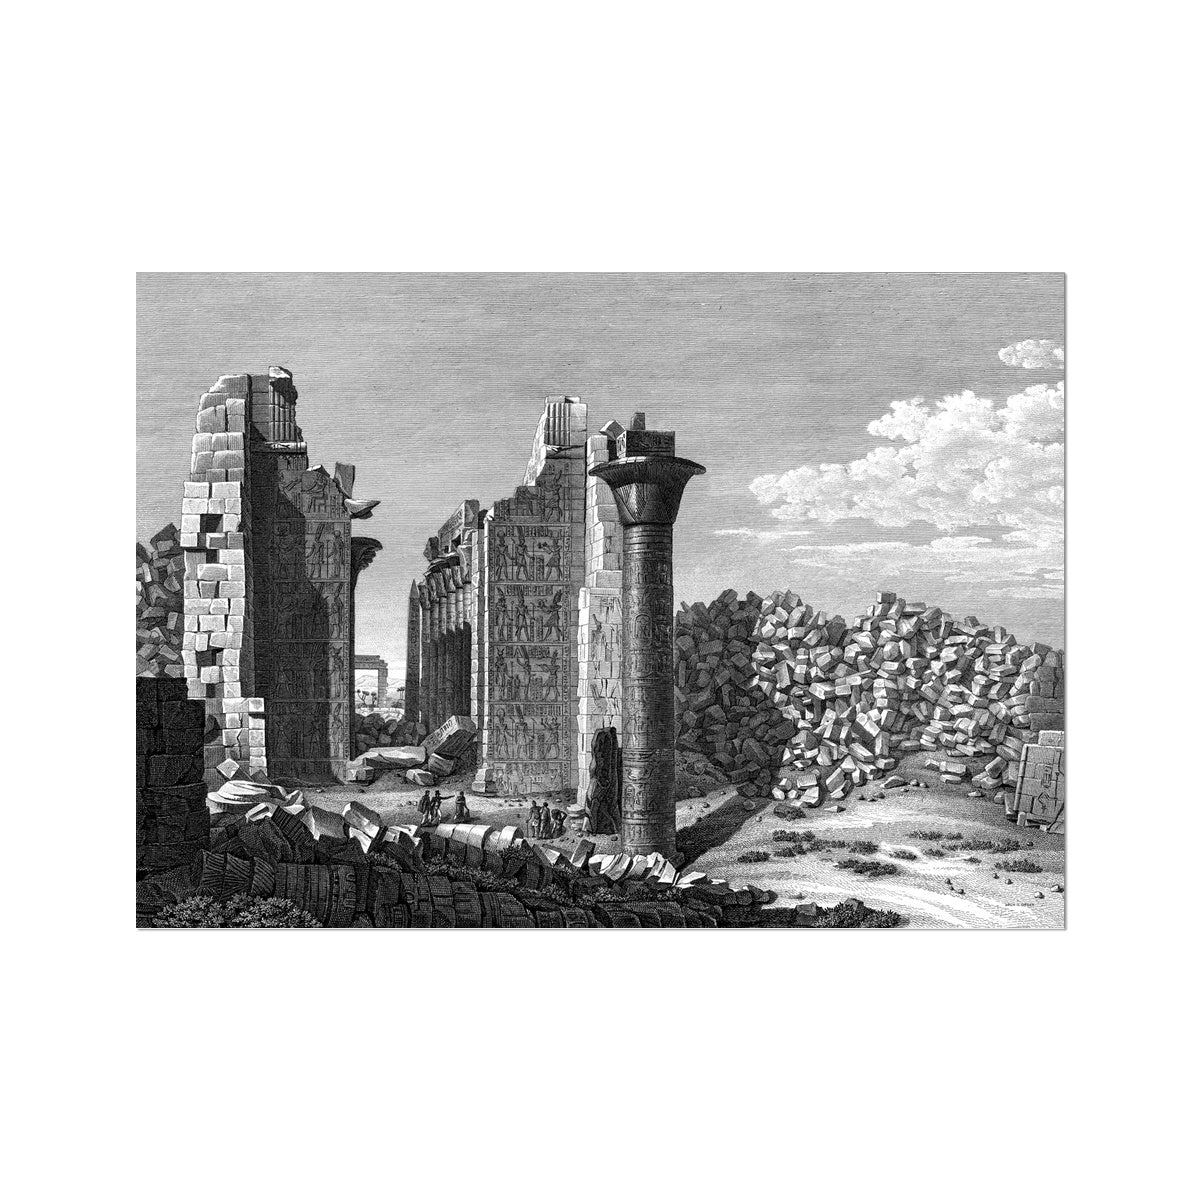 View of the Palace from the Courtyard - Karnak - Thebes Egypt -  Etching Paper Print